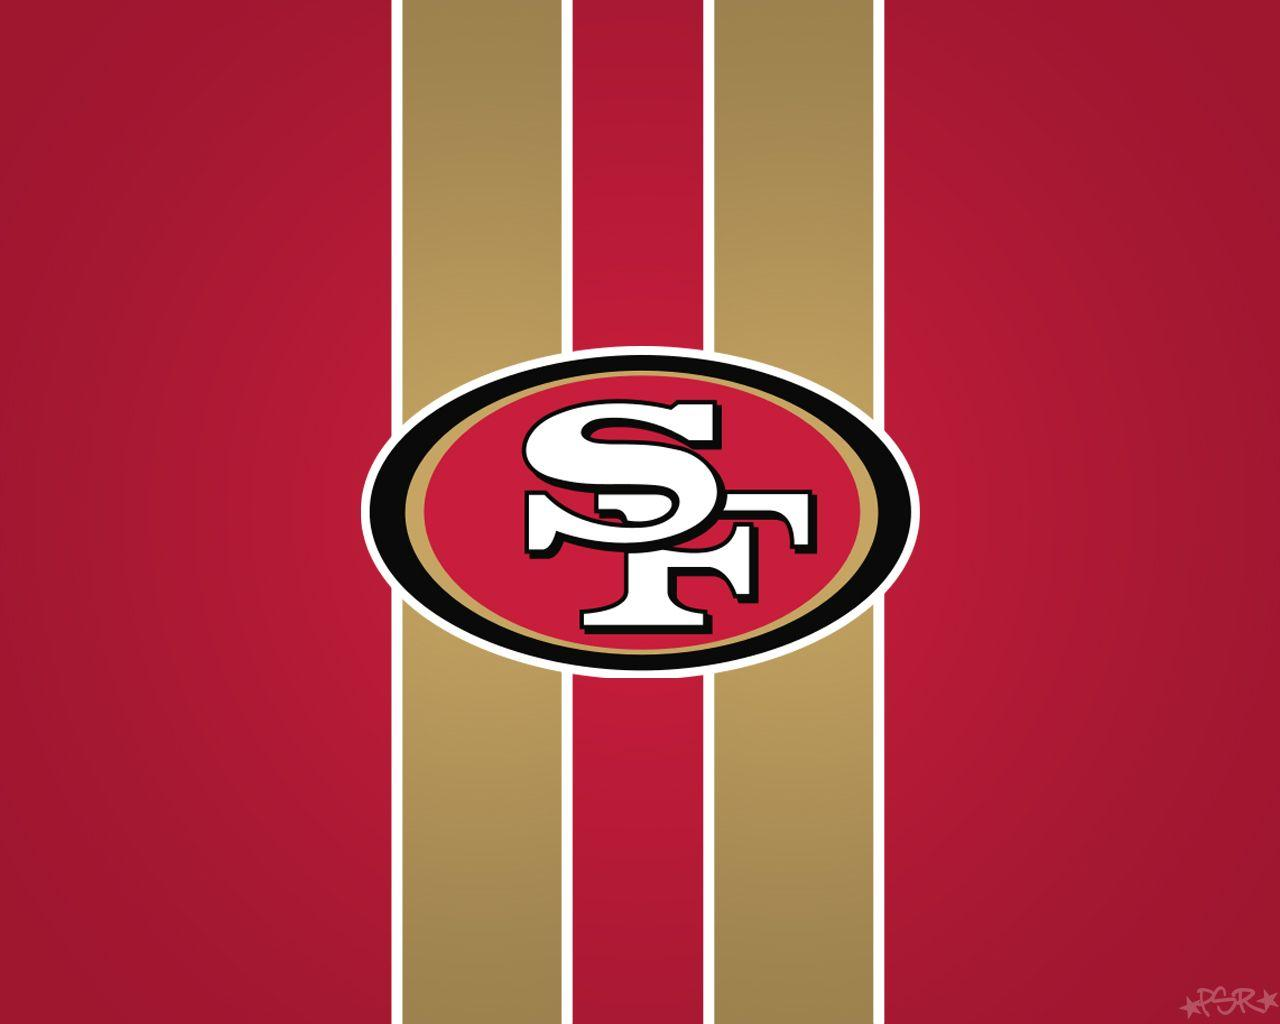 San francisco 49ers wallpapers wallpaper cave nice san francisco 49ers wallpaper san francisco 49ers wallpapers voltagebd Image collections